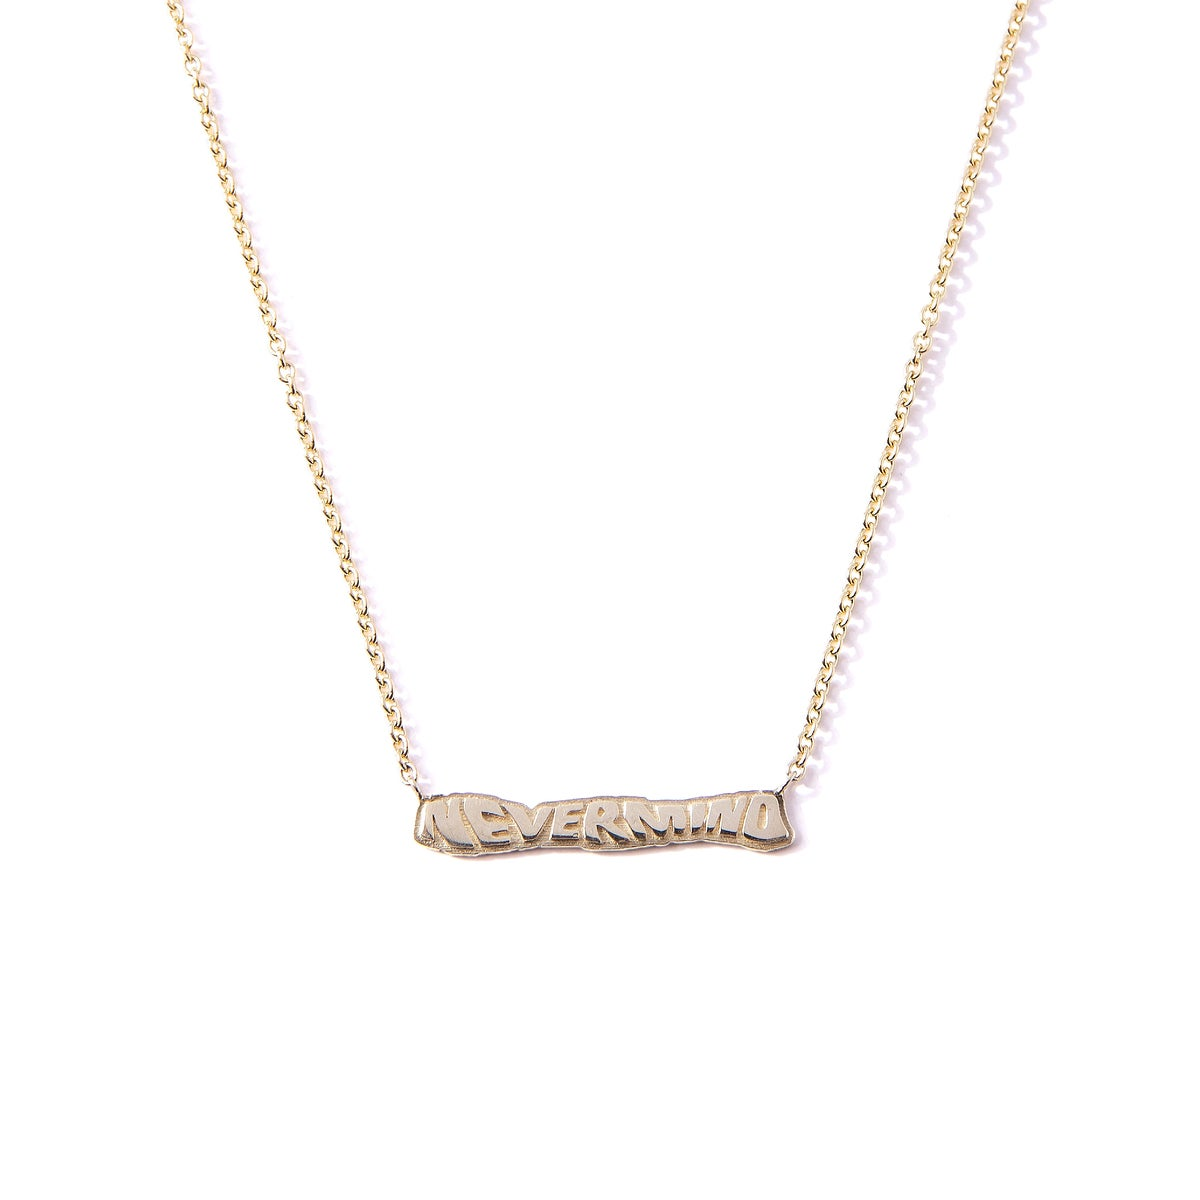 Image of 14k NeverMind Chain & Pendant